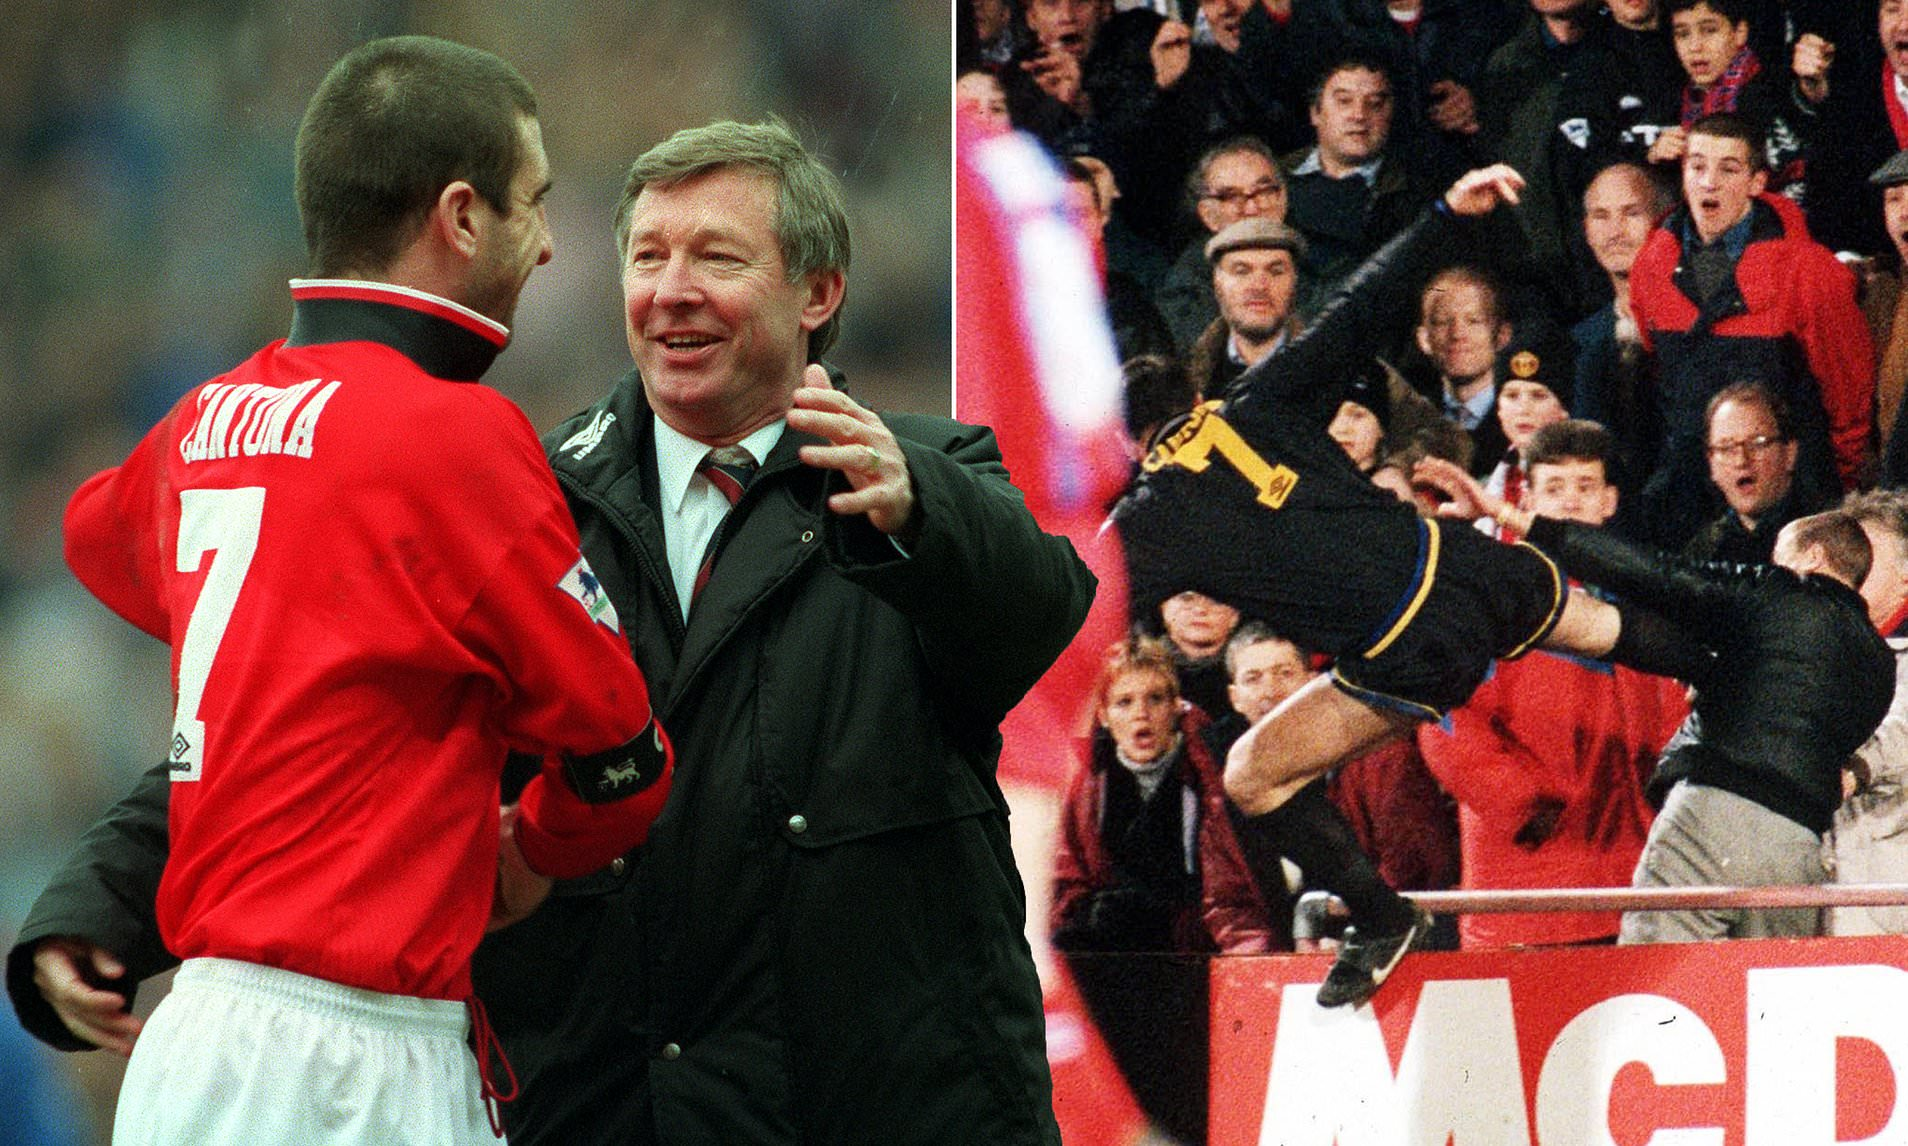 I didn't hit the palace fan strong enough. Eric Cantona Reveals He Wished He Kicked Crystal Palace Fan Matthew Simmonds Even Harder Daily Mail Online